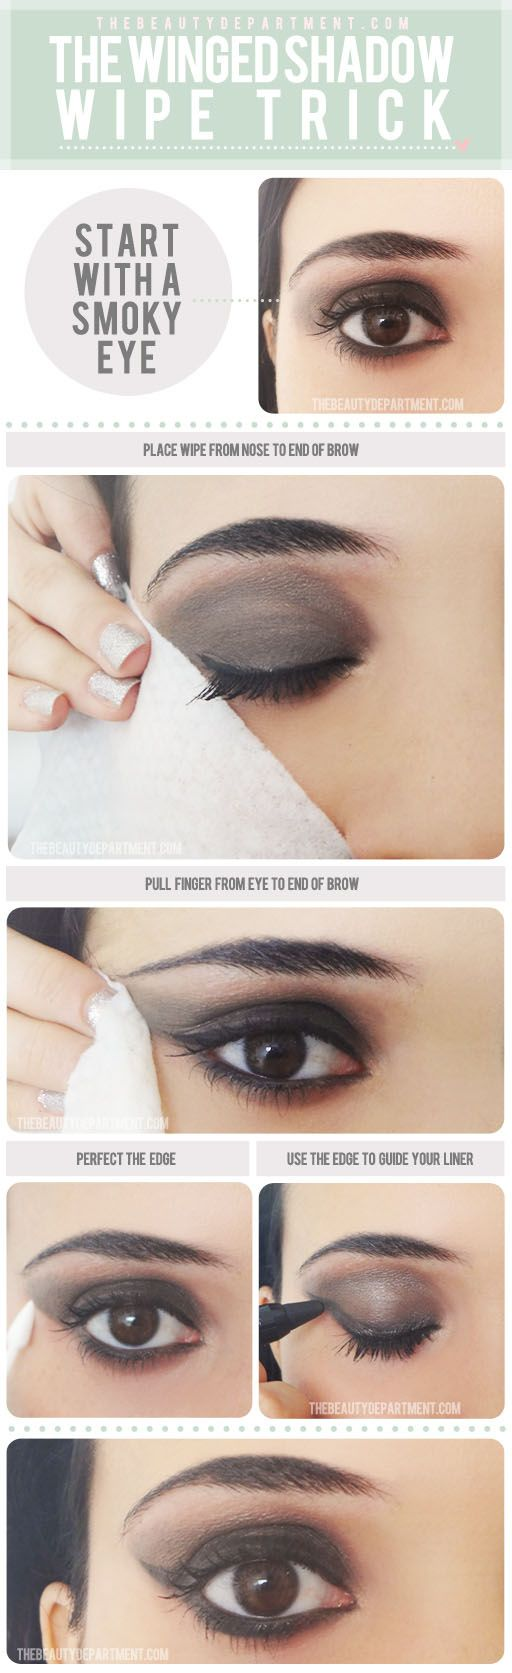 Wing your liner and shadow, for a look that's twice as dramatic.